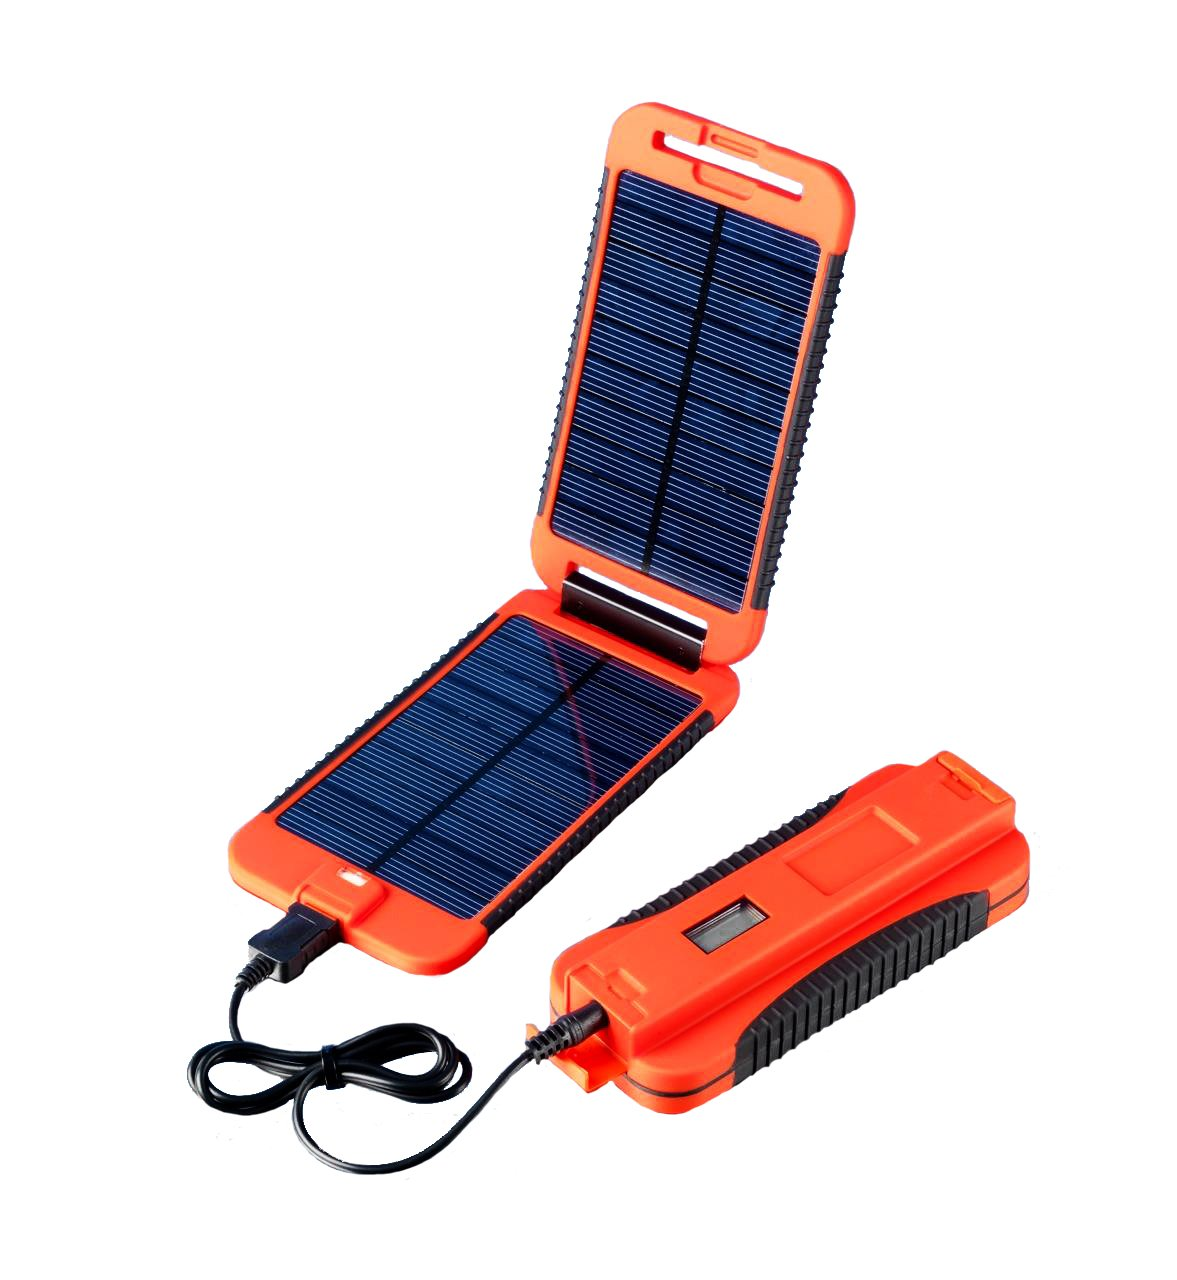 Powertraveller 5V and 12V Solar Portable Charger Powermonkey Extreme